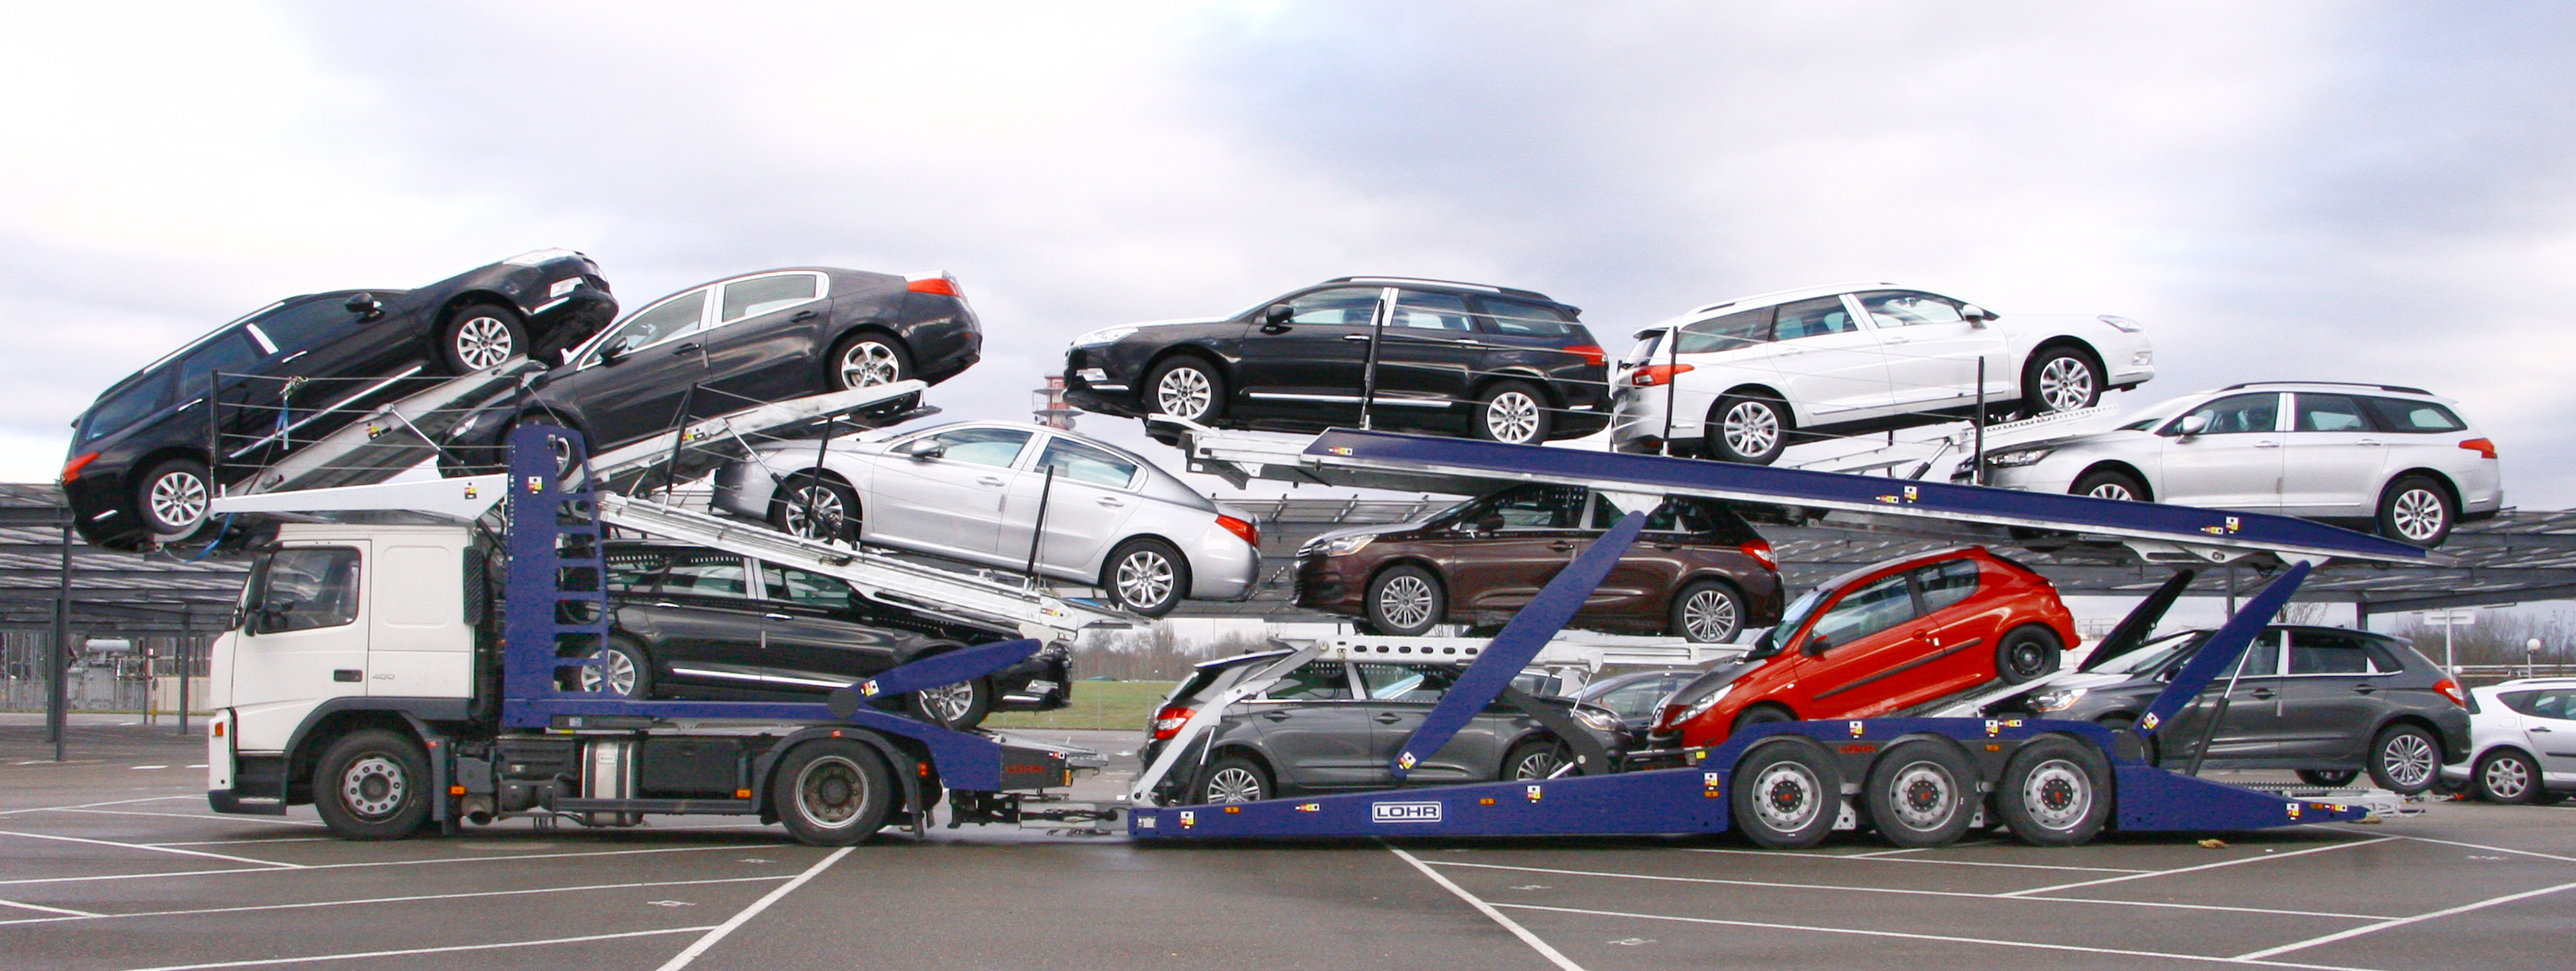 Eurolohr UK, Lohr car-carriers designed for the UK market, loaded with 11 cars: family cars, sedans and city cars.